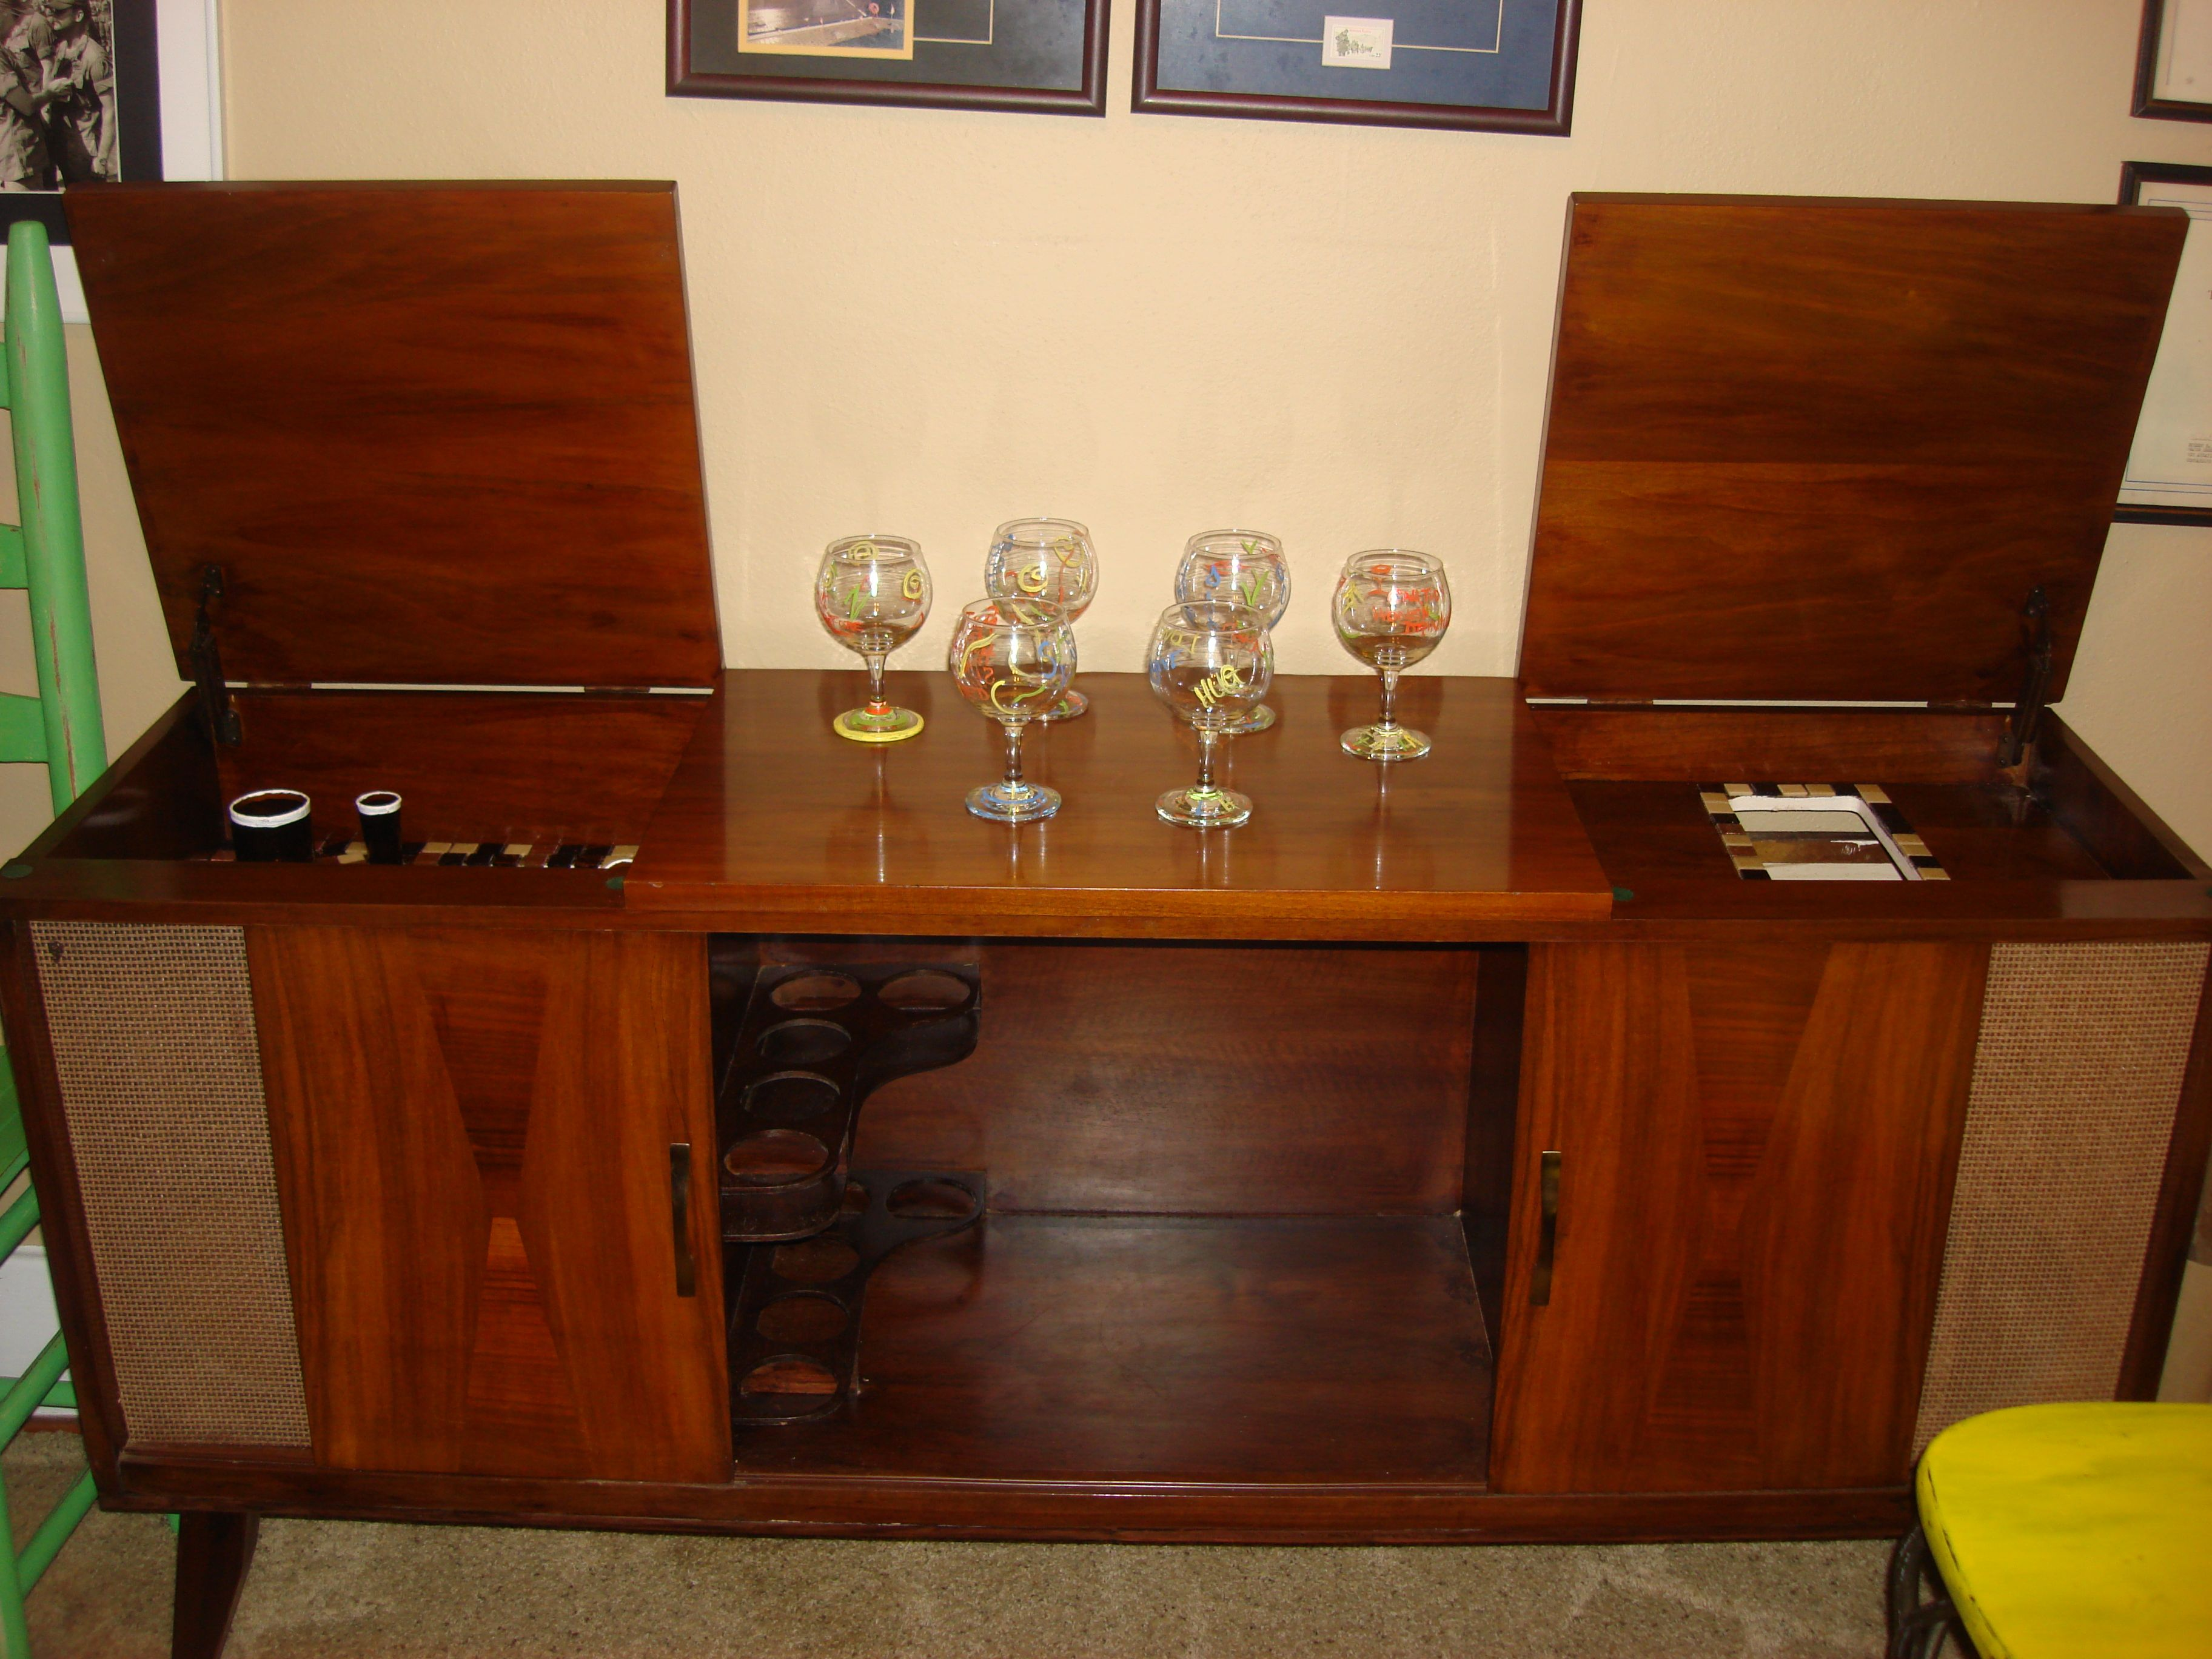 A 1960's console stereo re-purposed into a bar. Visit me on ...